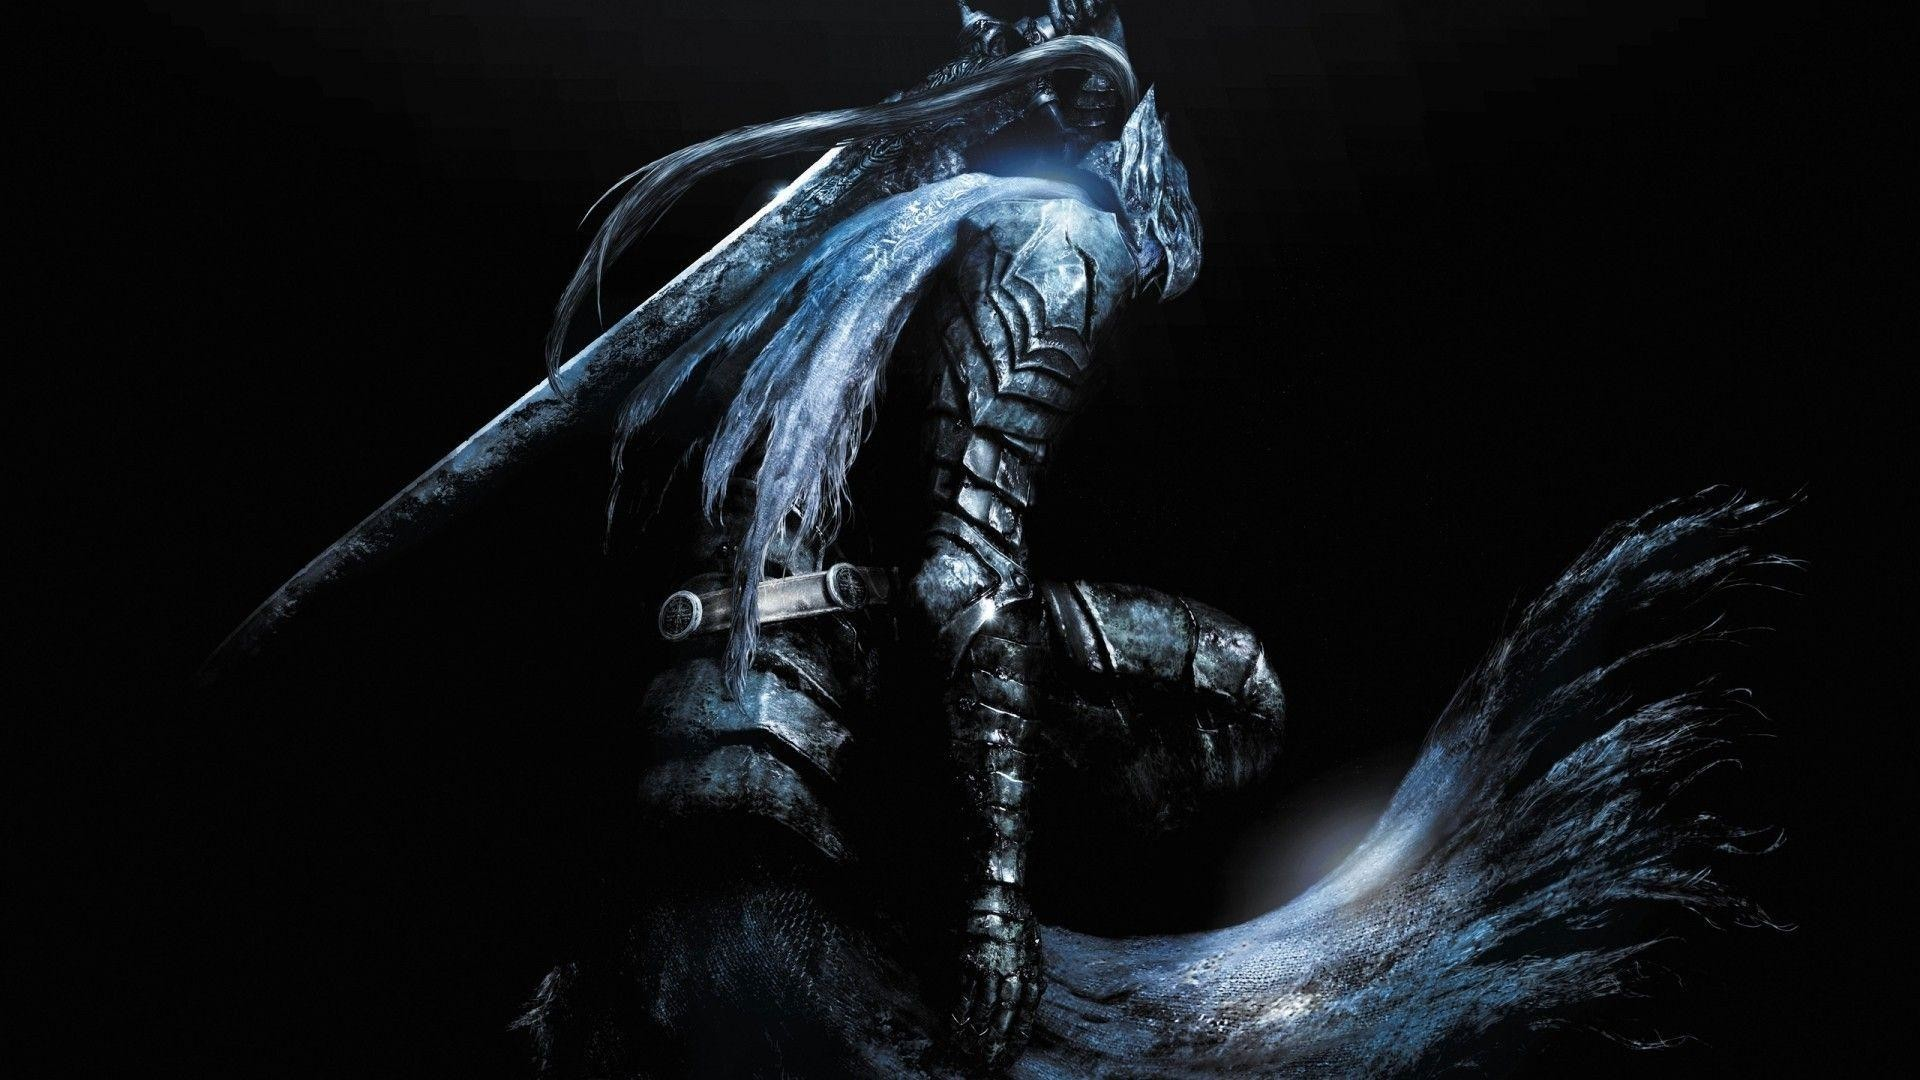 1920x1080 Dark Souls Black Knight Wallpaper Phone Is Cool Wallpapers